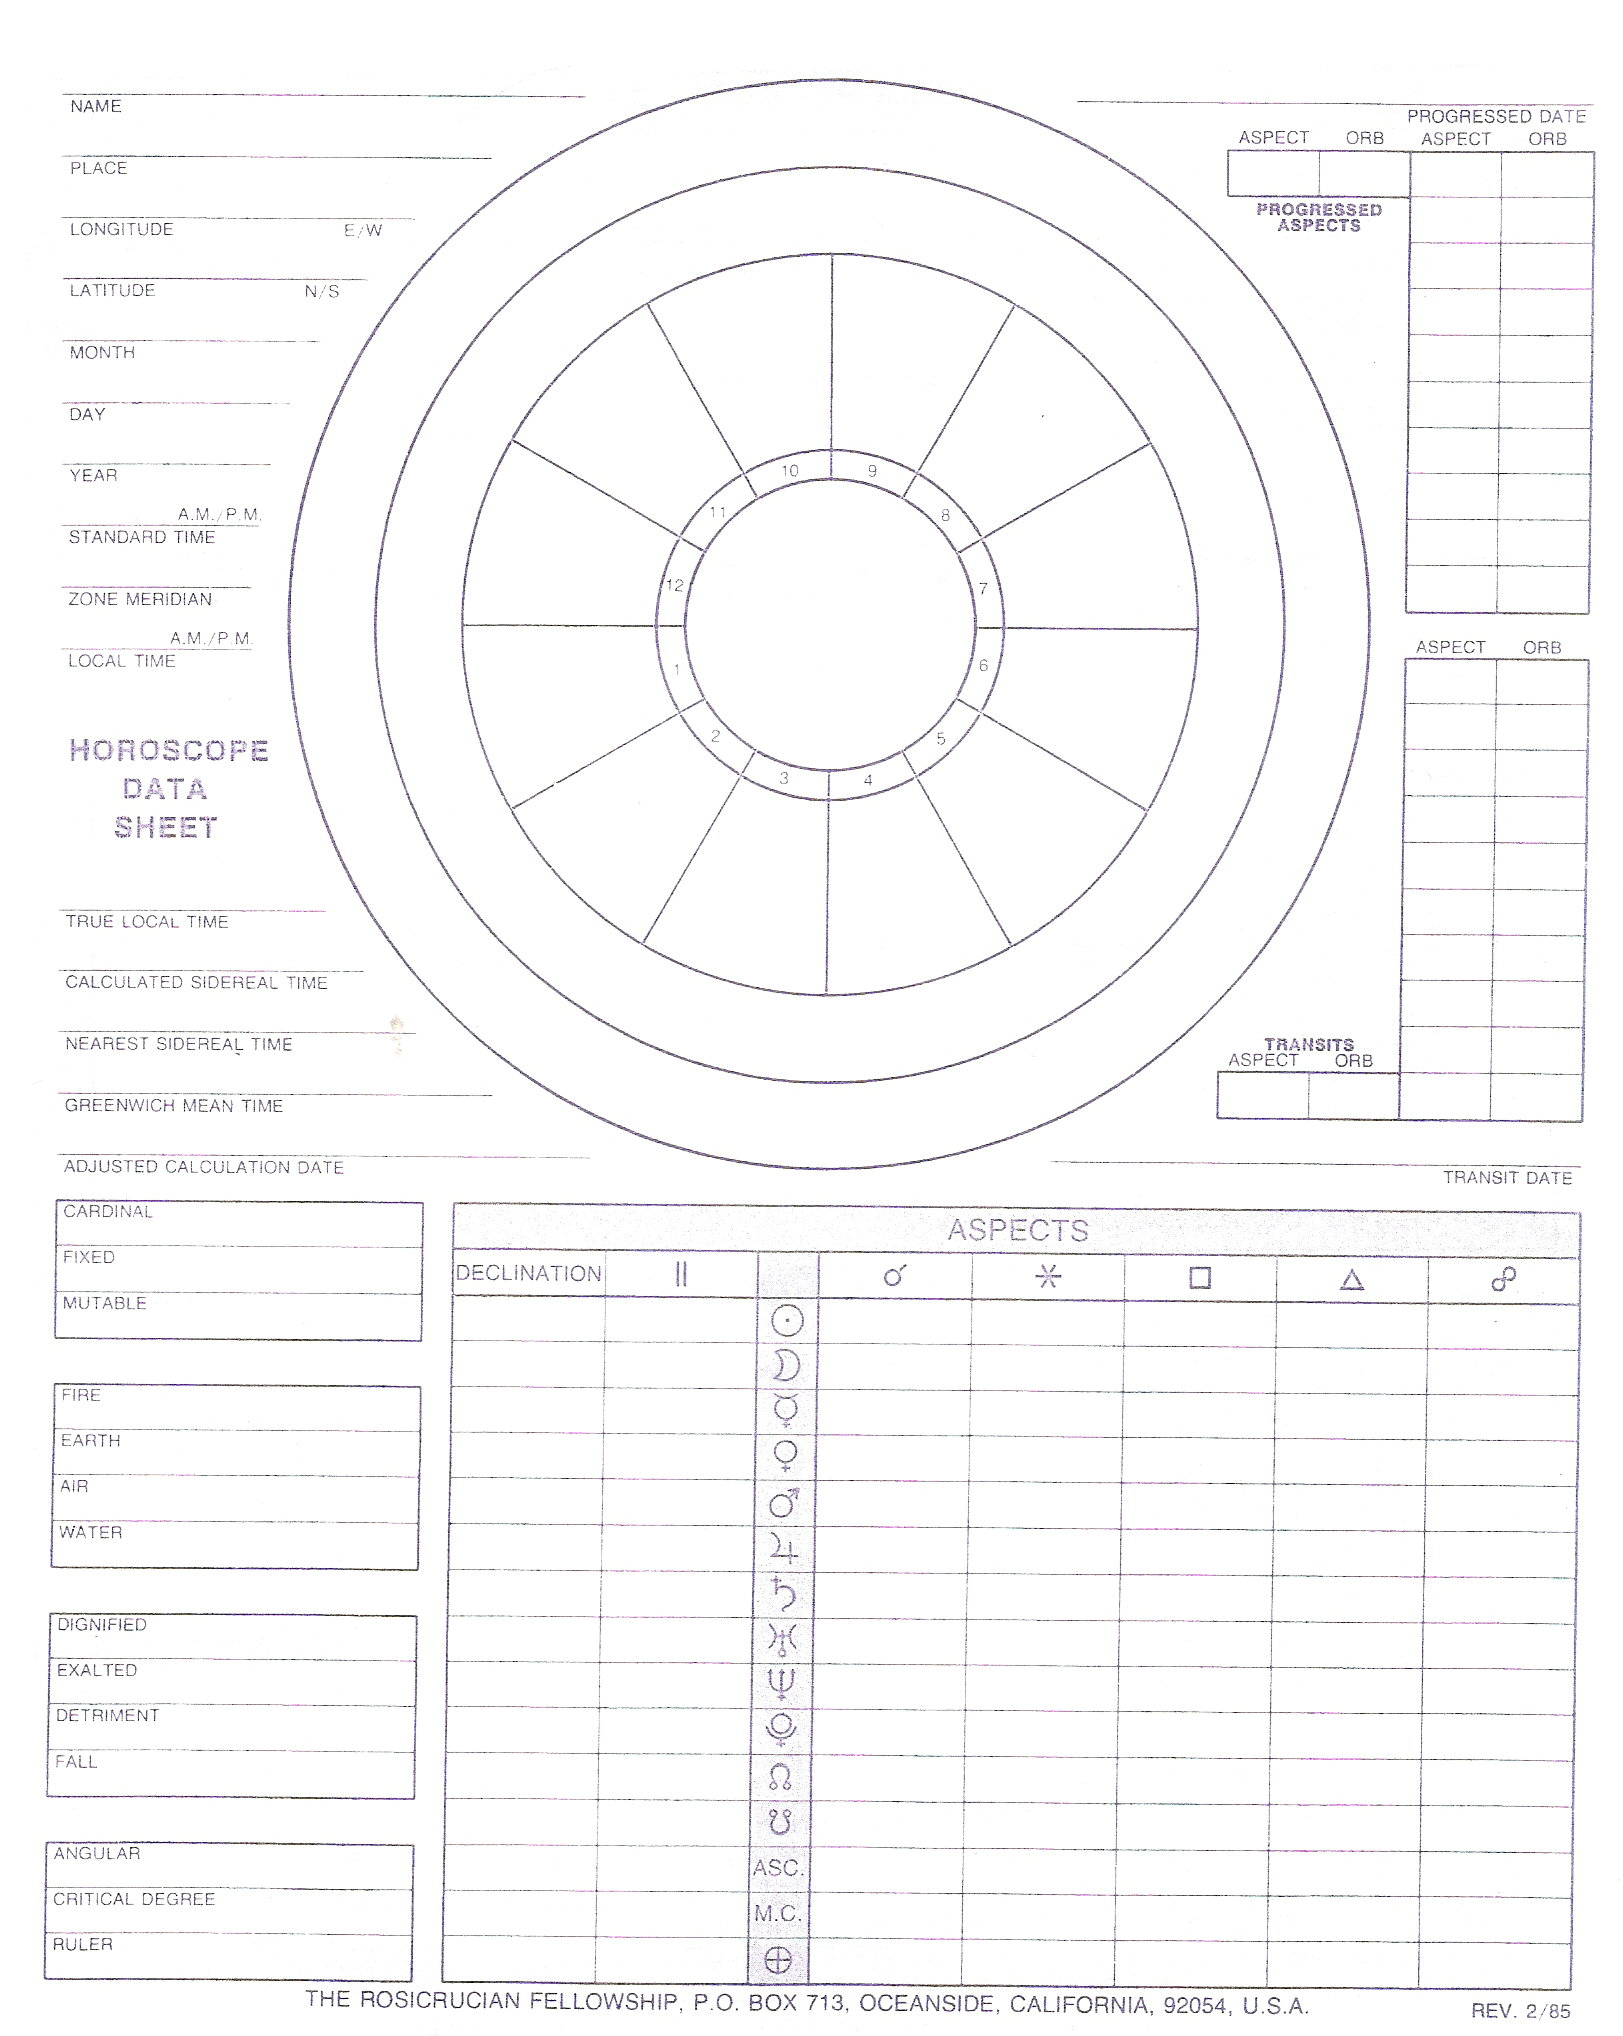 Blank astrology wheel blank with data and worksheet 2 sided front and back nvjuhfo Choice Image